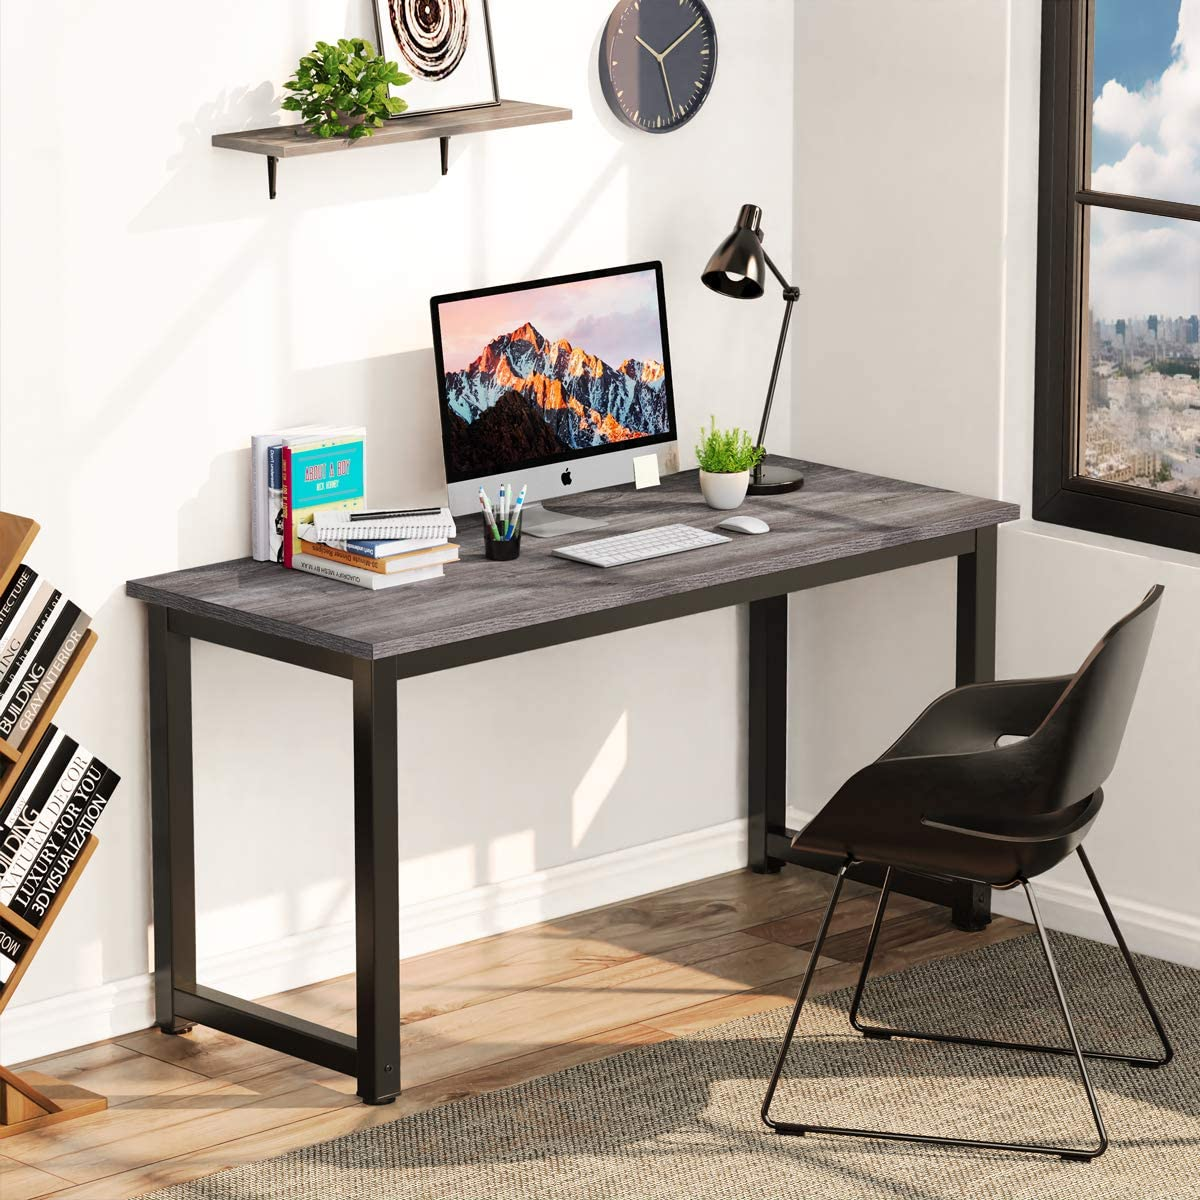 Corner Computer Desk, 47-inch Spacious Computer Table for Office Small Spaces Bedroom and Study (Grey)